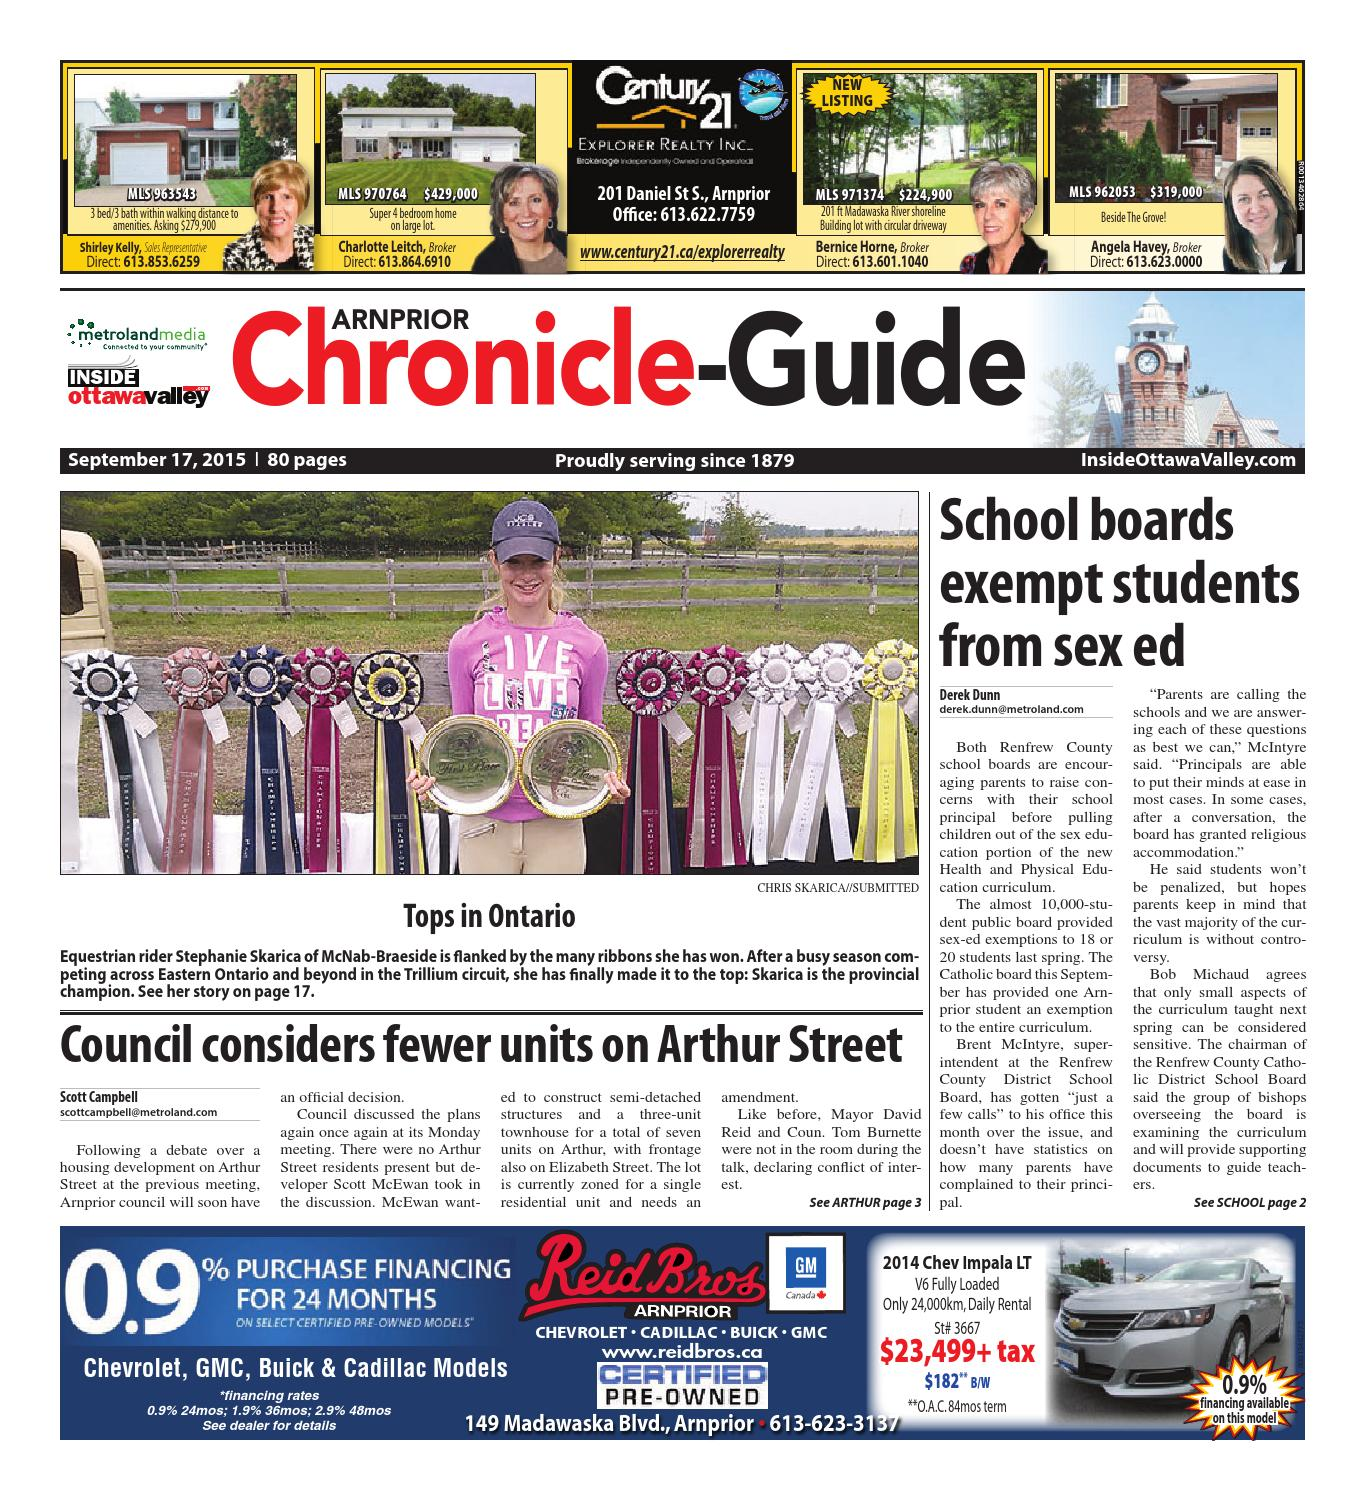 Arnprior091715 by Metroland East - Arnprior Chronicle-Guide - issuu